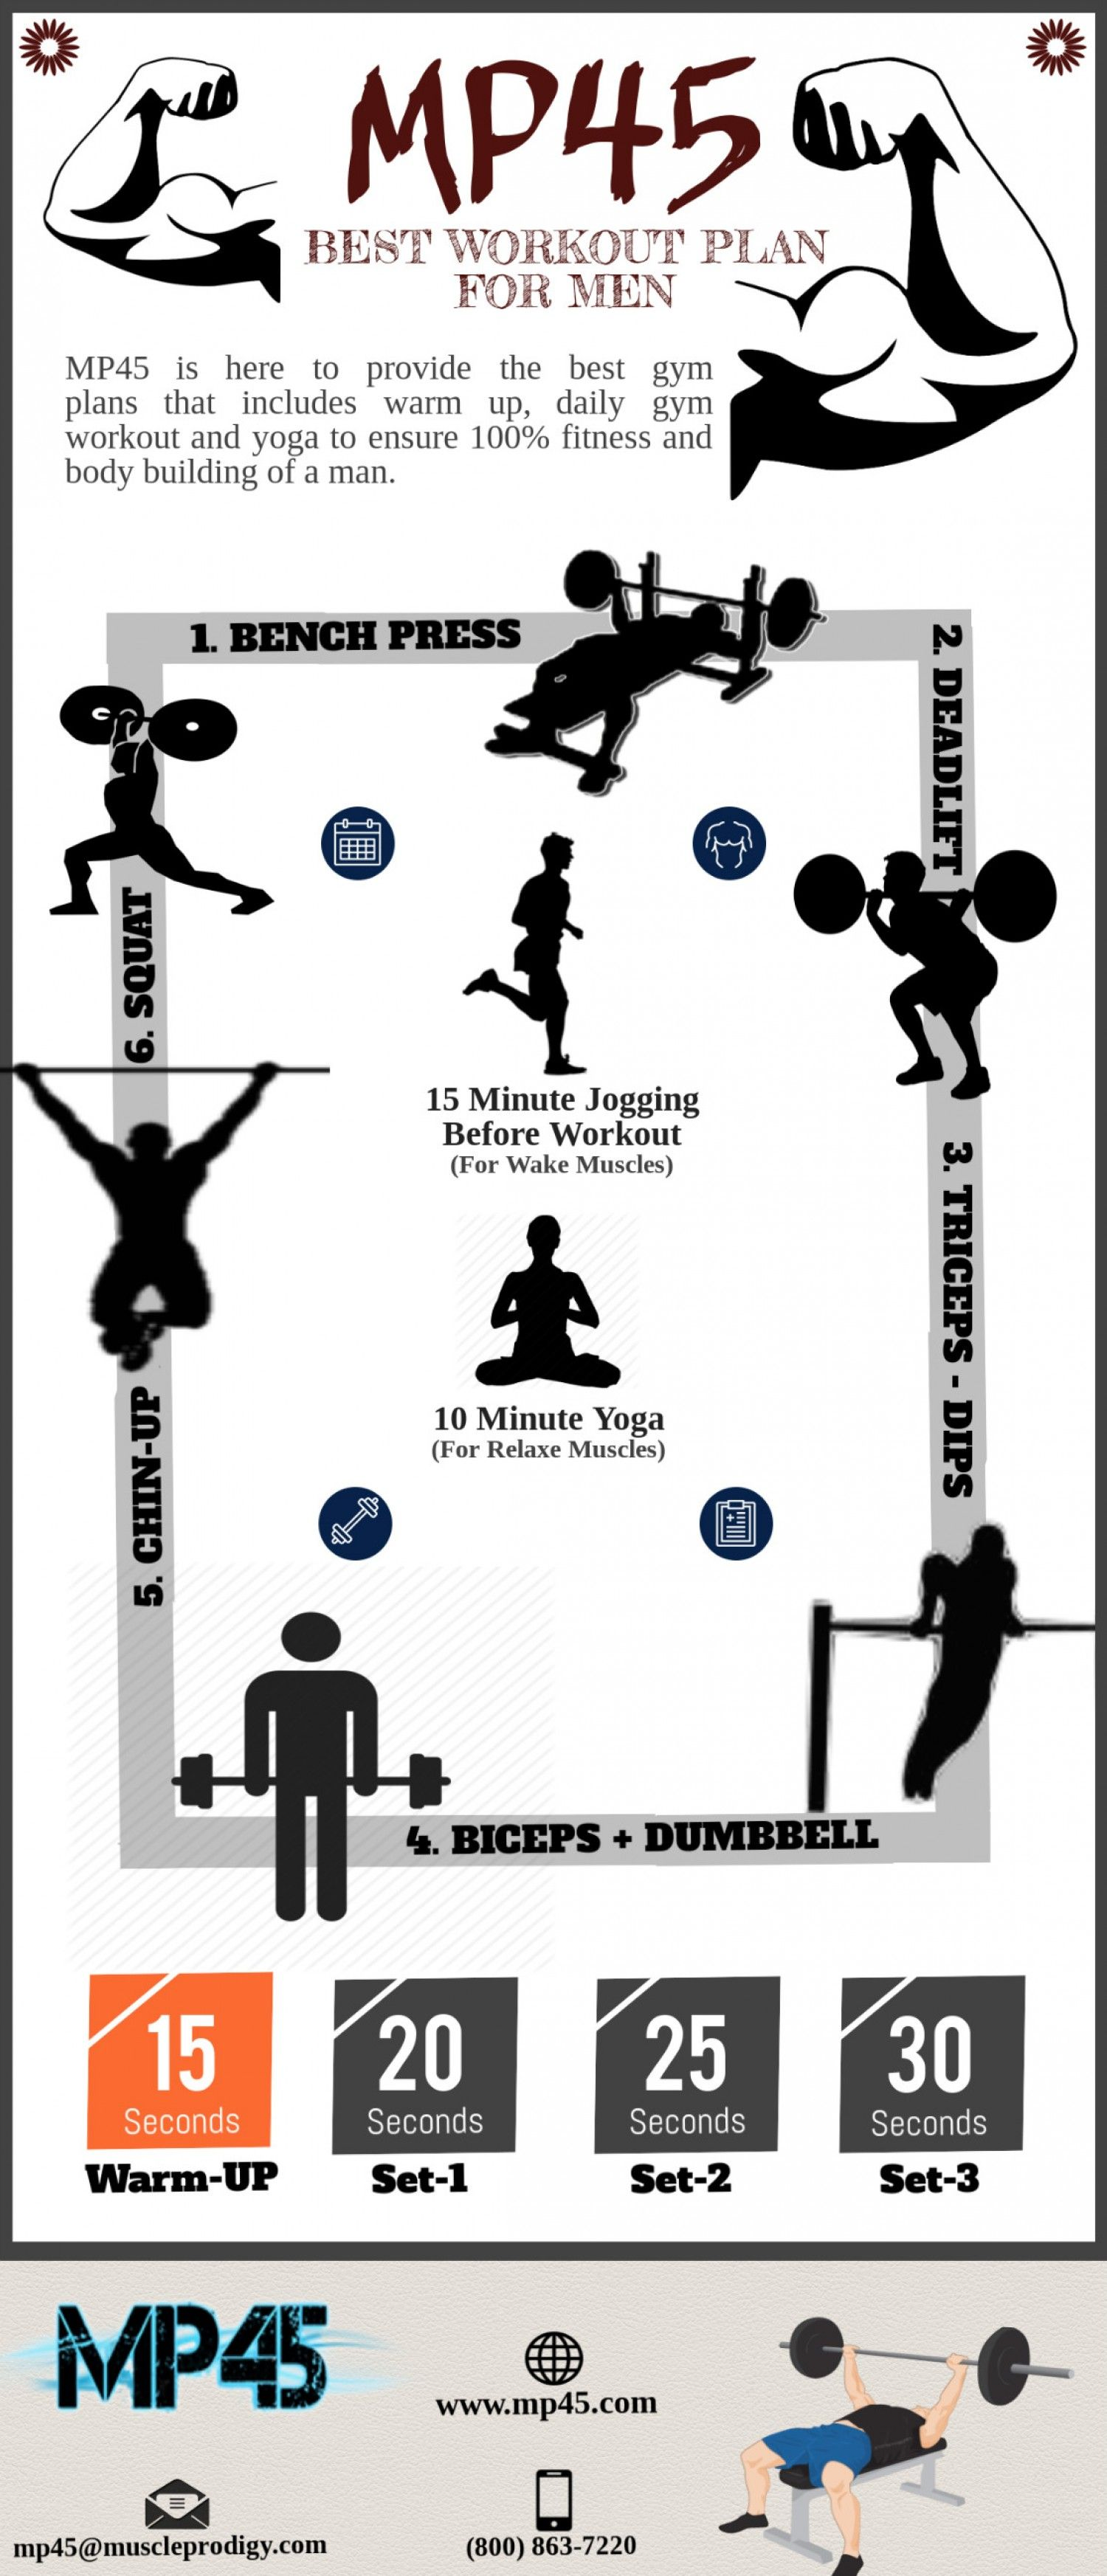 best workout plan for men at home infographic | boxing workouts at